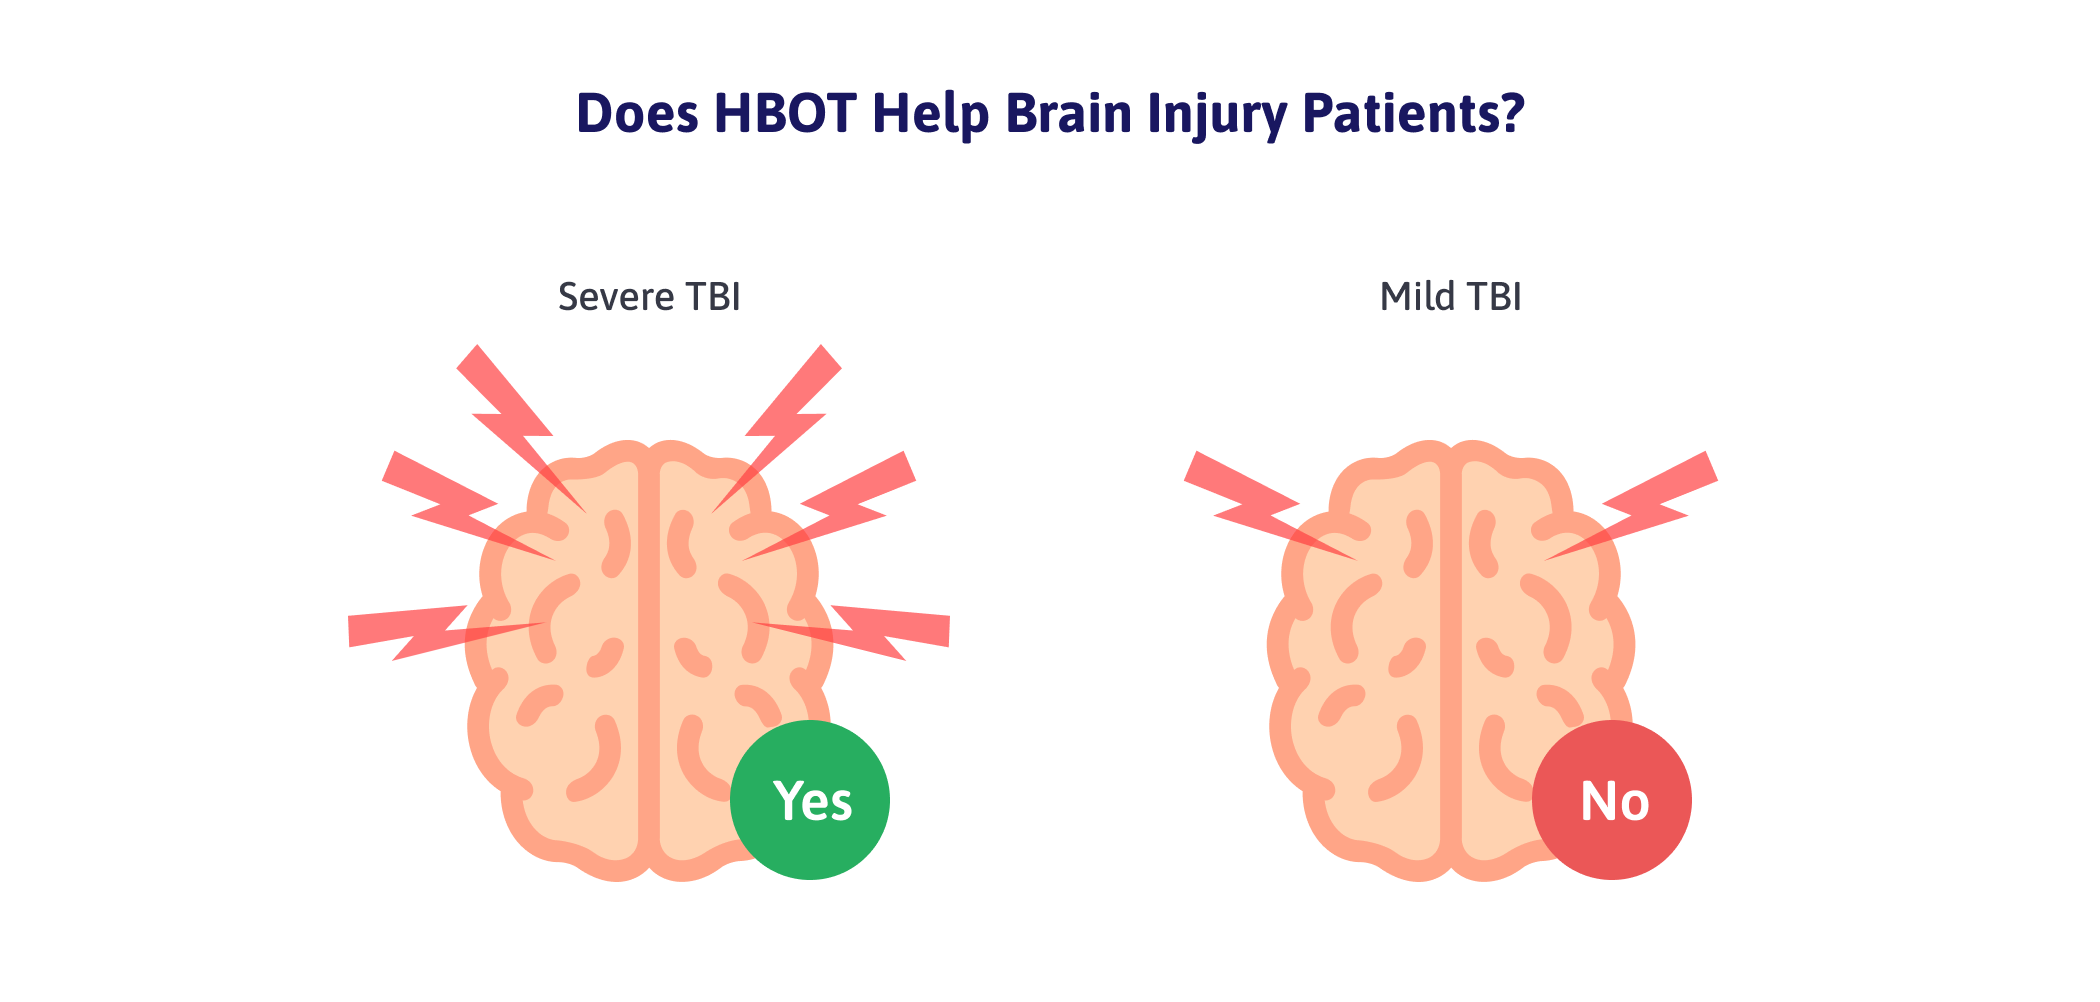 Hyperbaric oxygen treatment helps acute, severe TBI recovery, but does not help patients with lingering post-concussion symptoms.